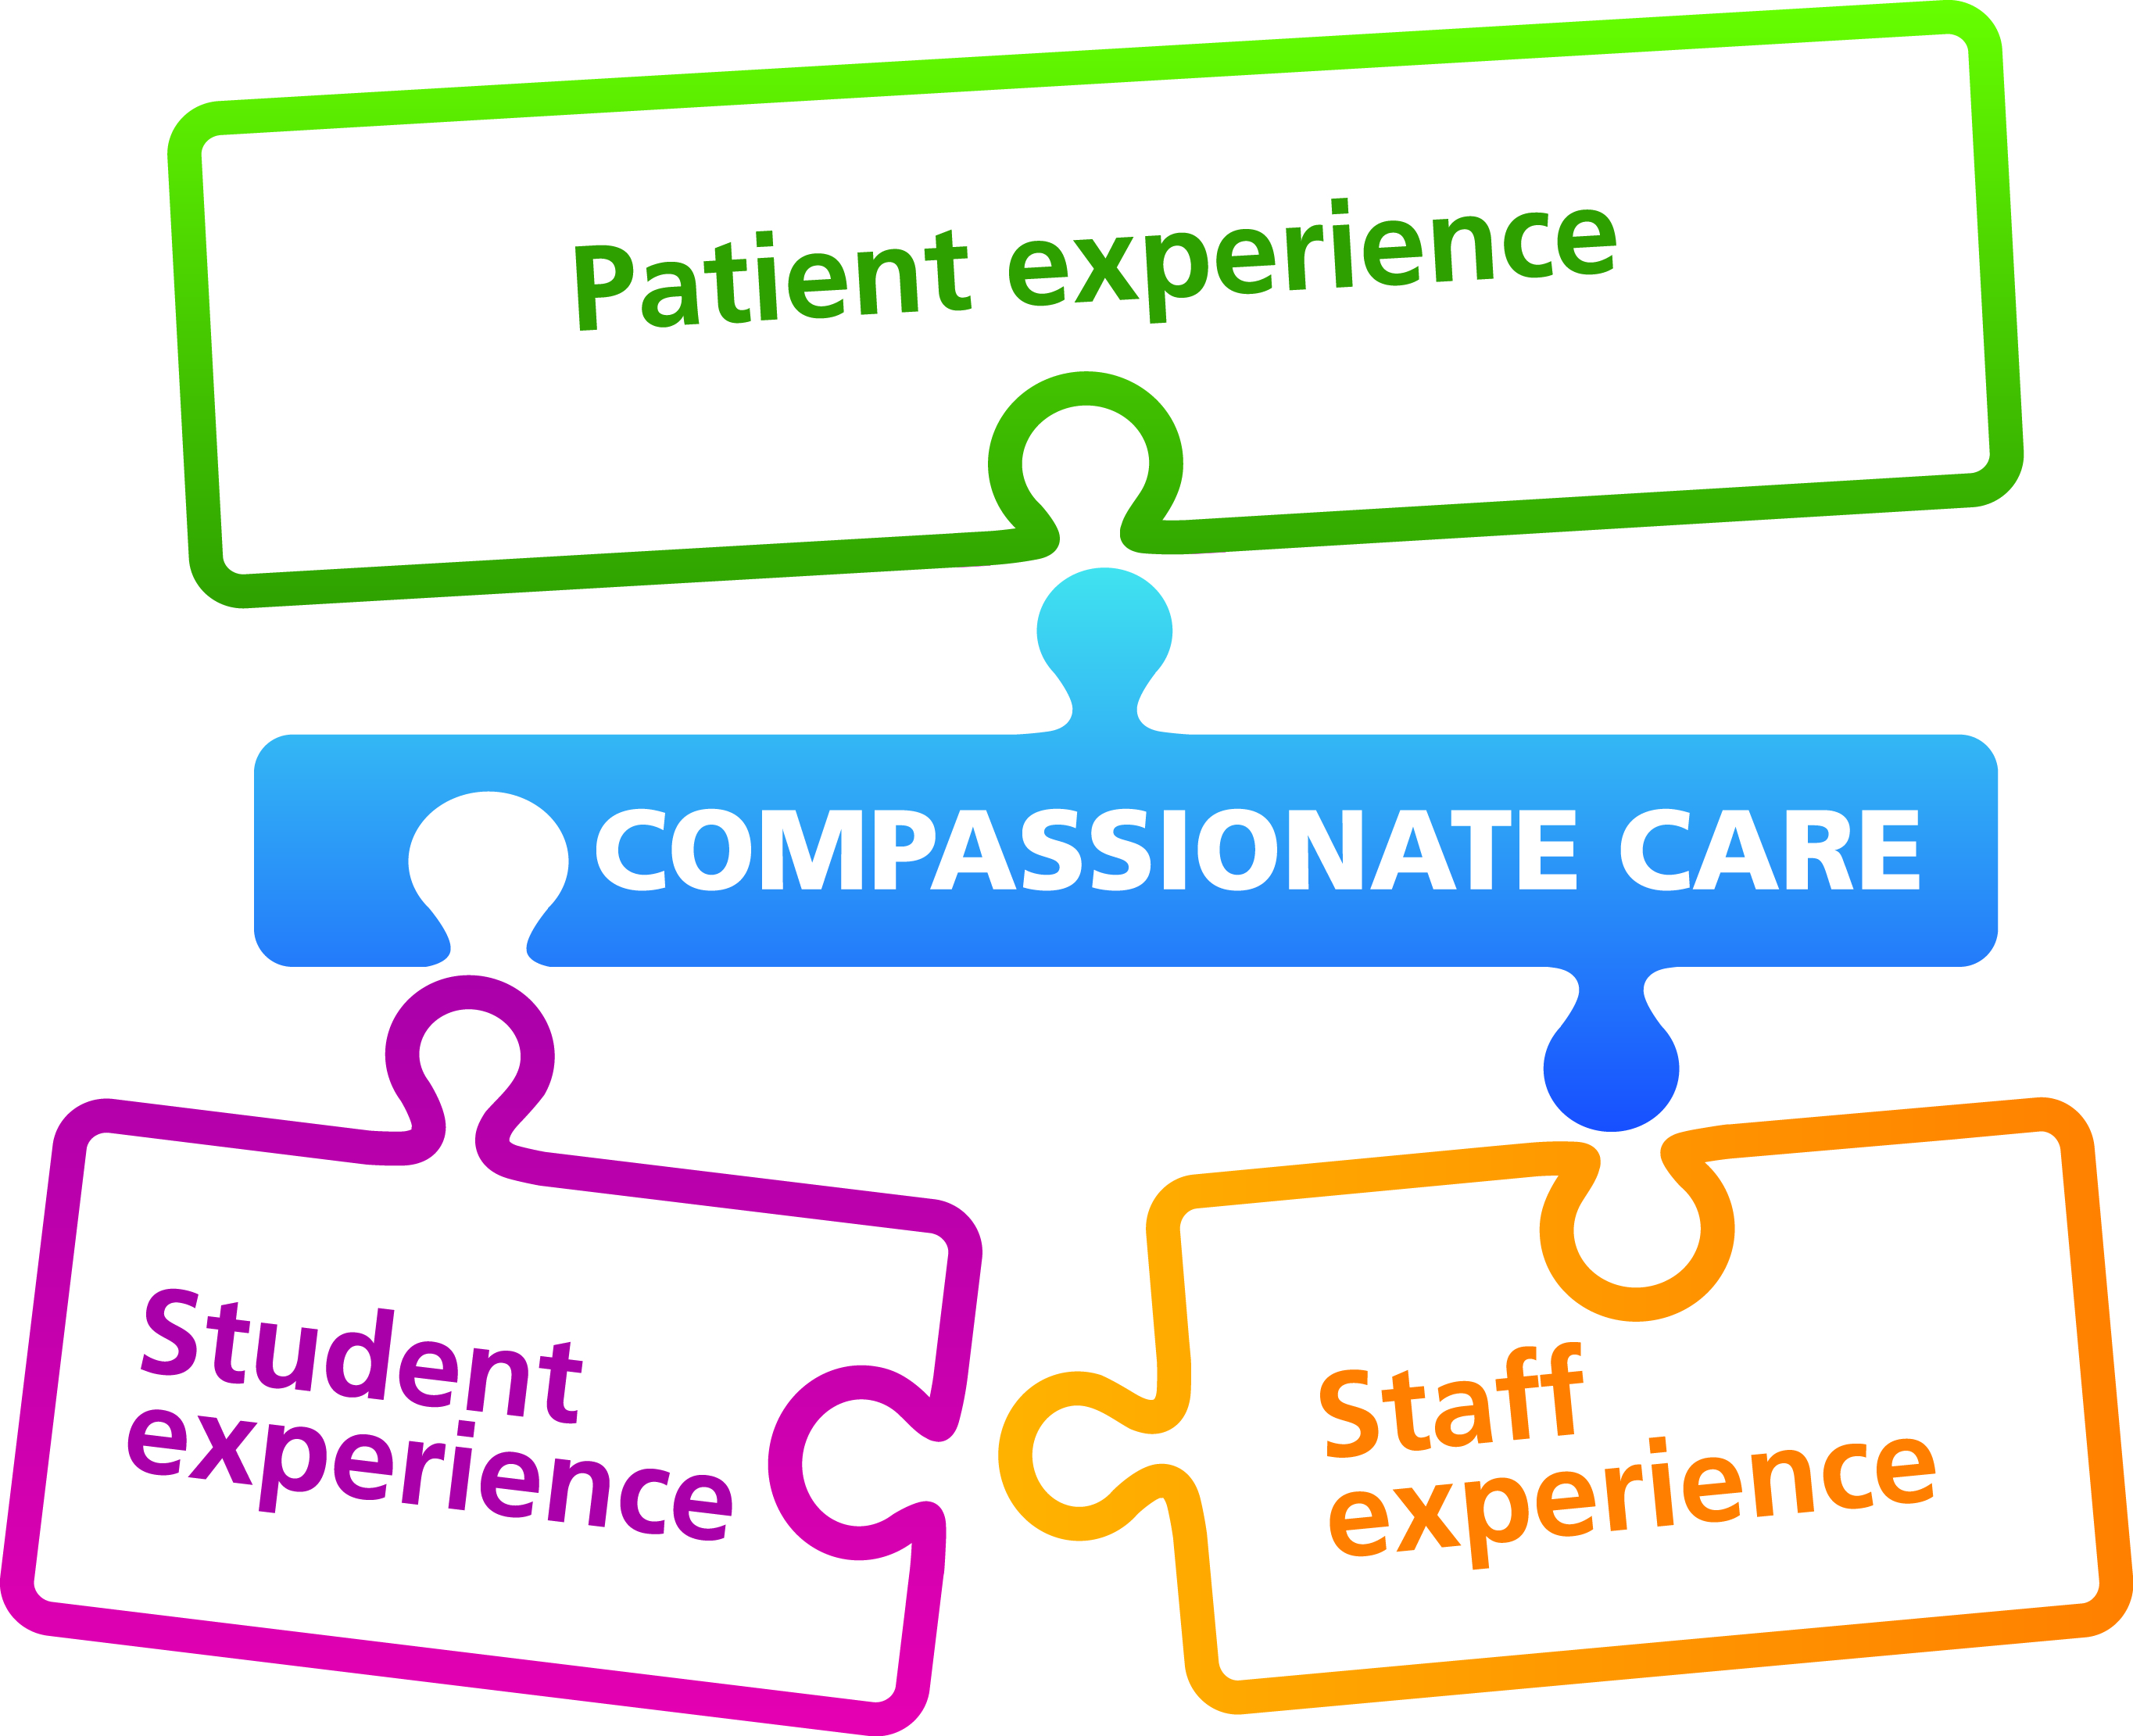 Patient Experience 2